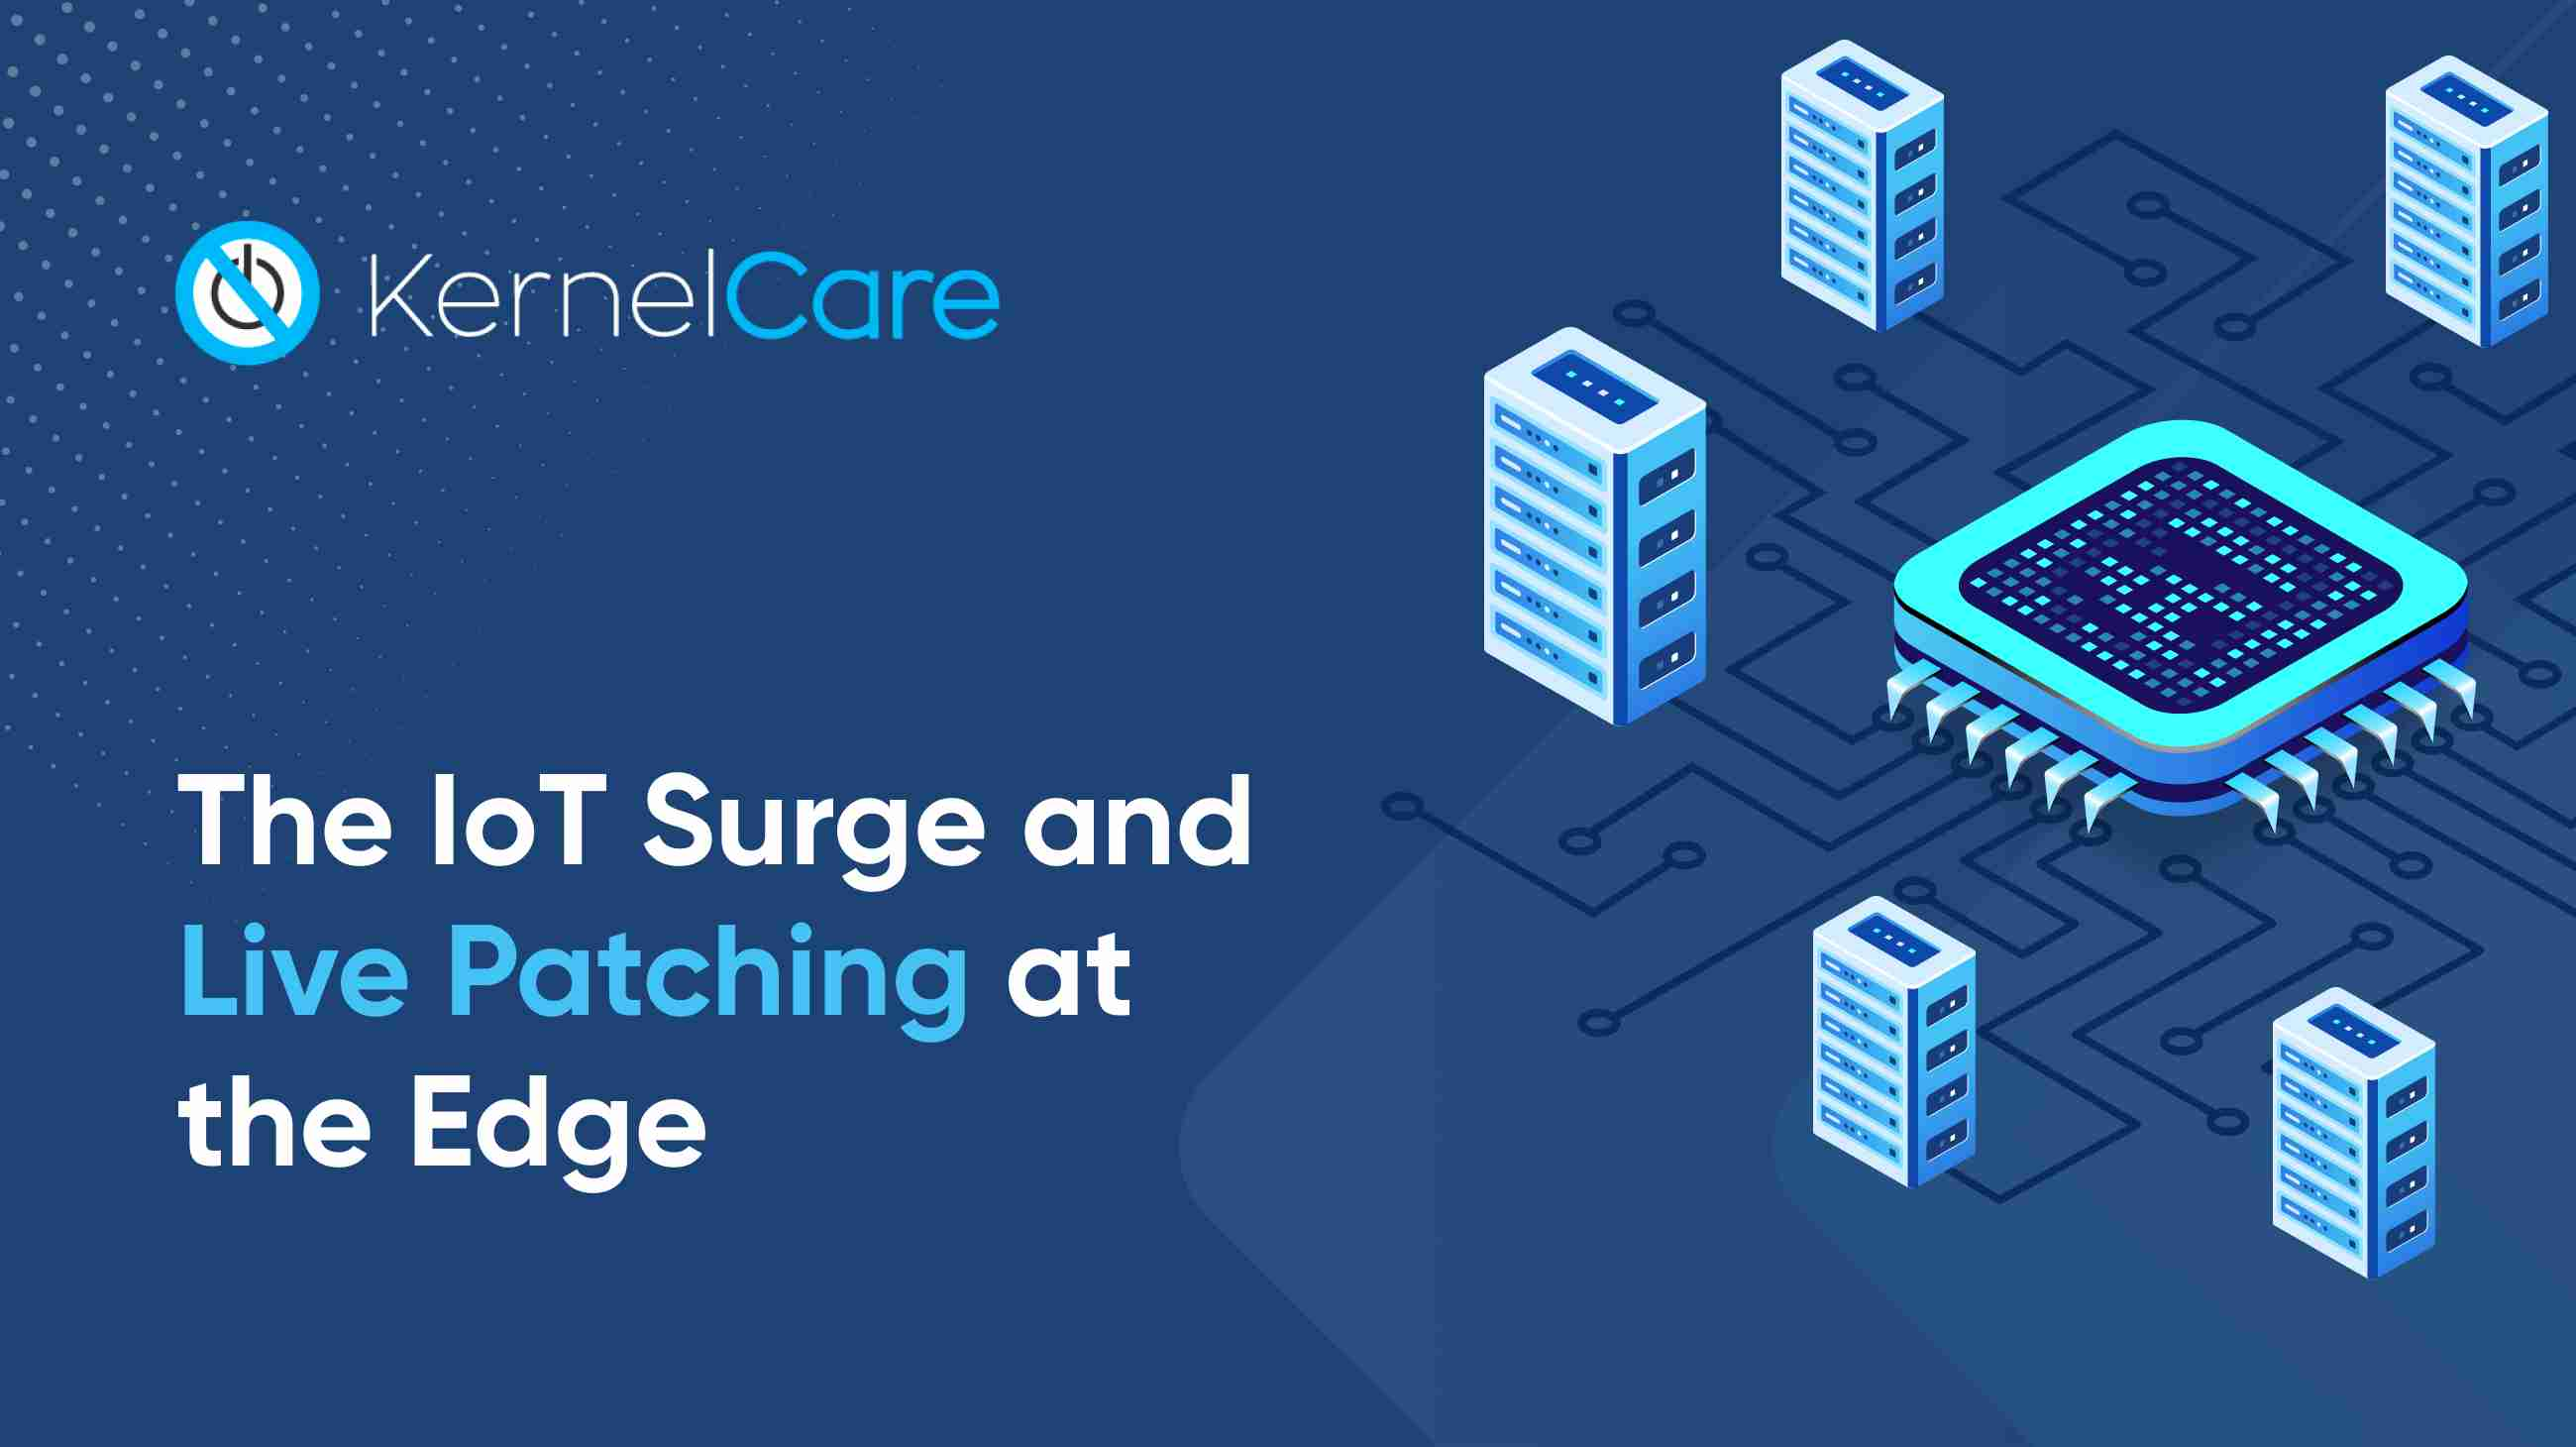 The IoT surge and live patching at the edge